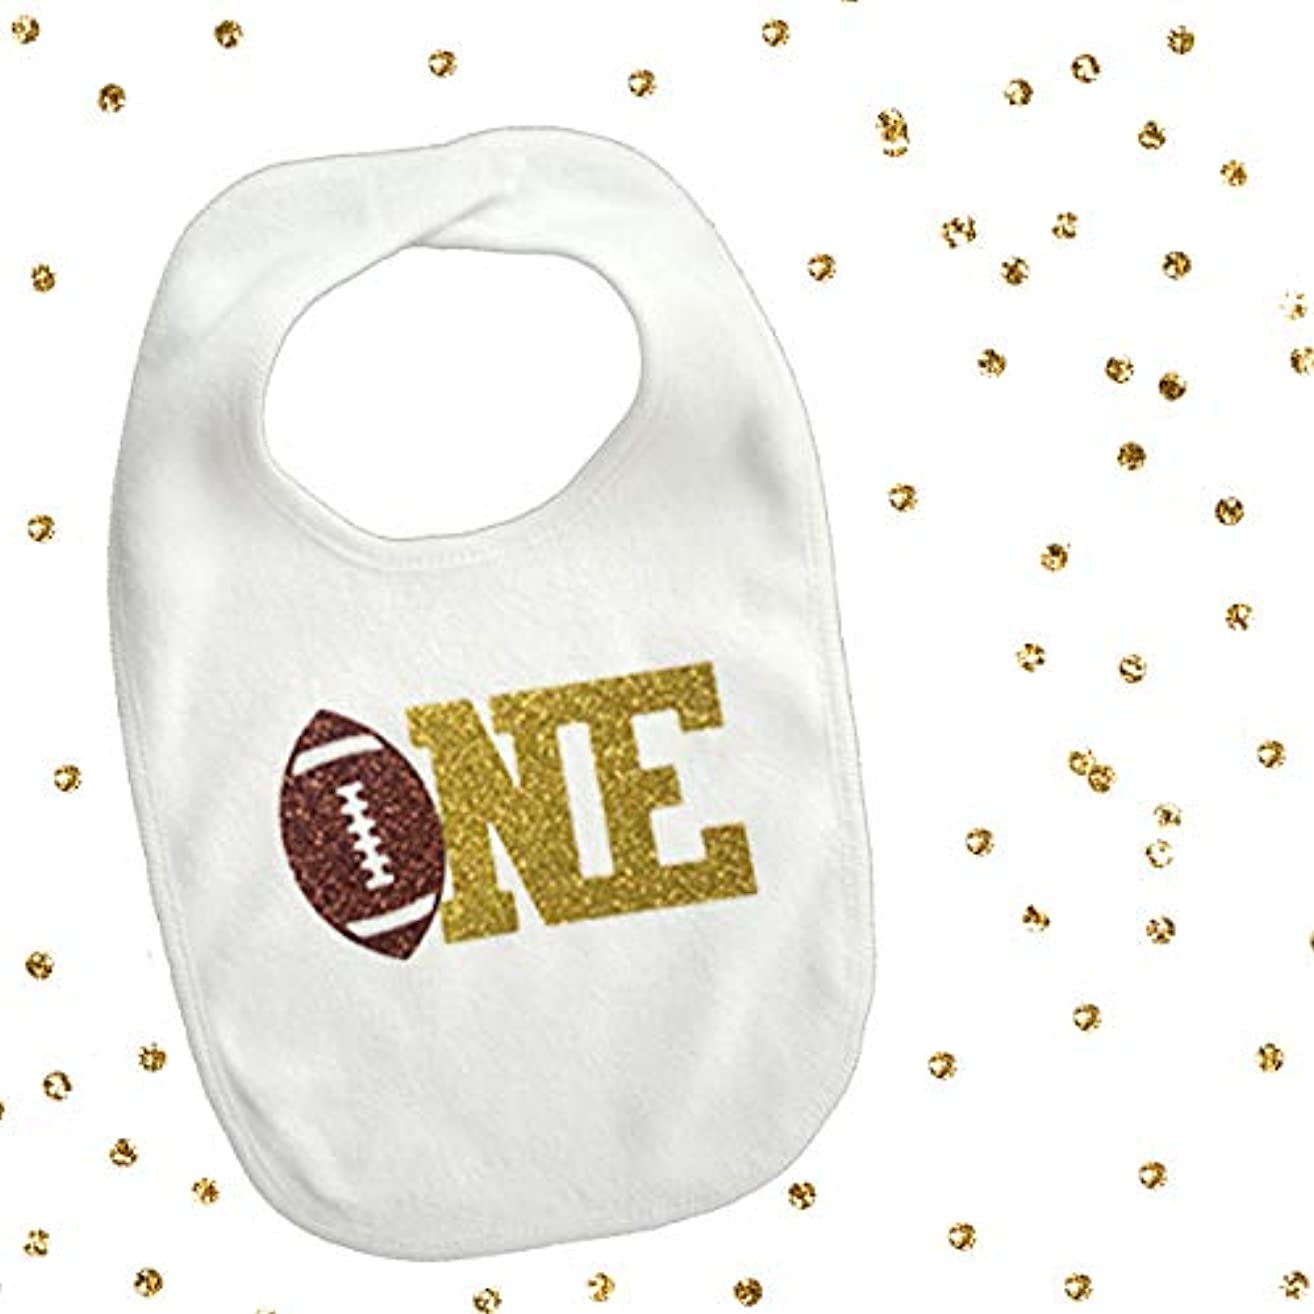 1 piece one football 2 colors brown and gold glitter bib toddler boy for first birthday gift cake smash photo prop sports theme